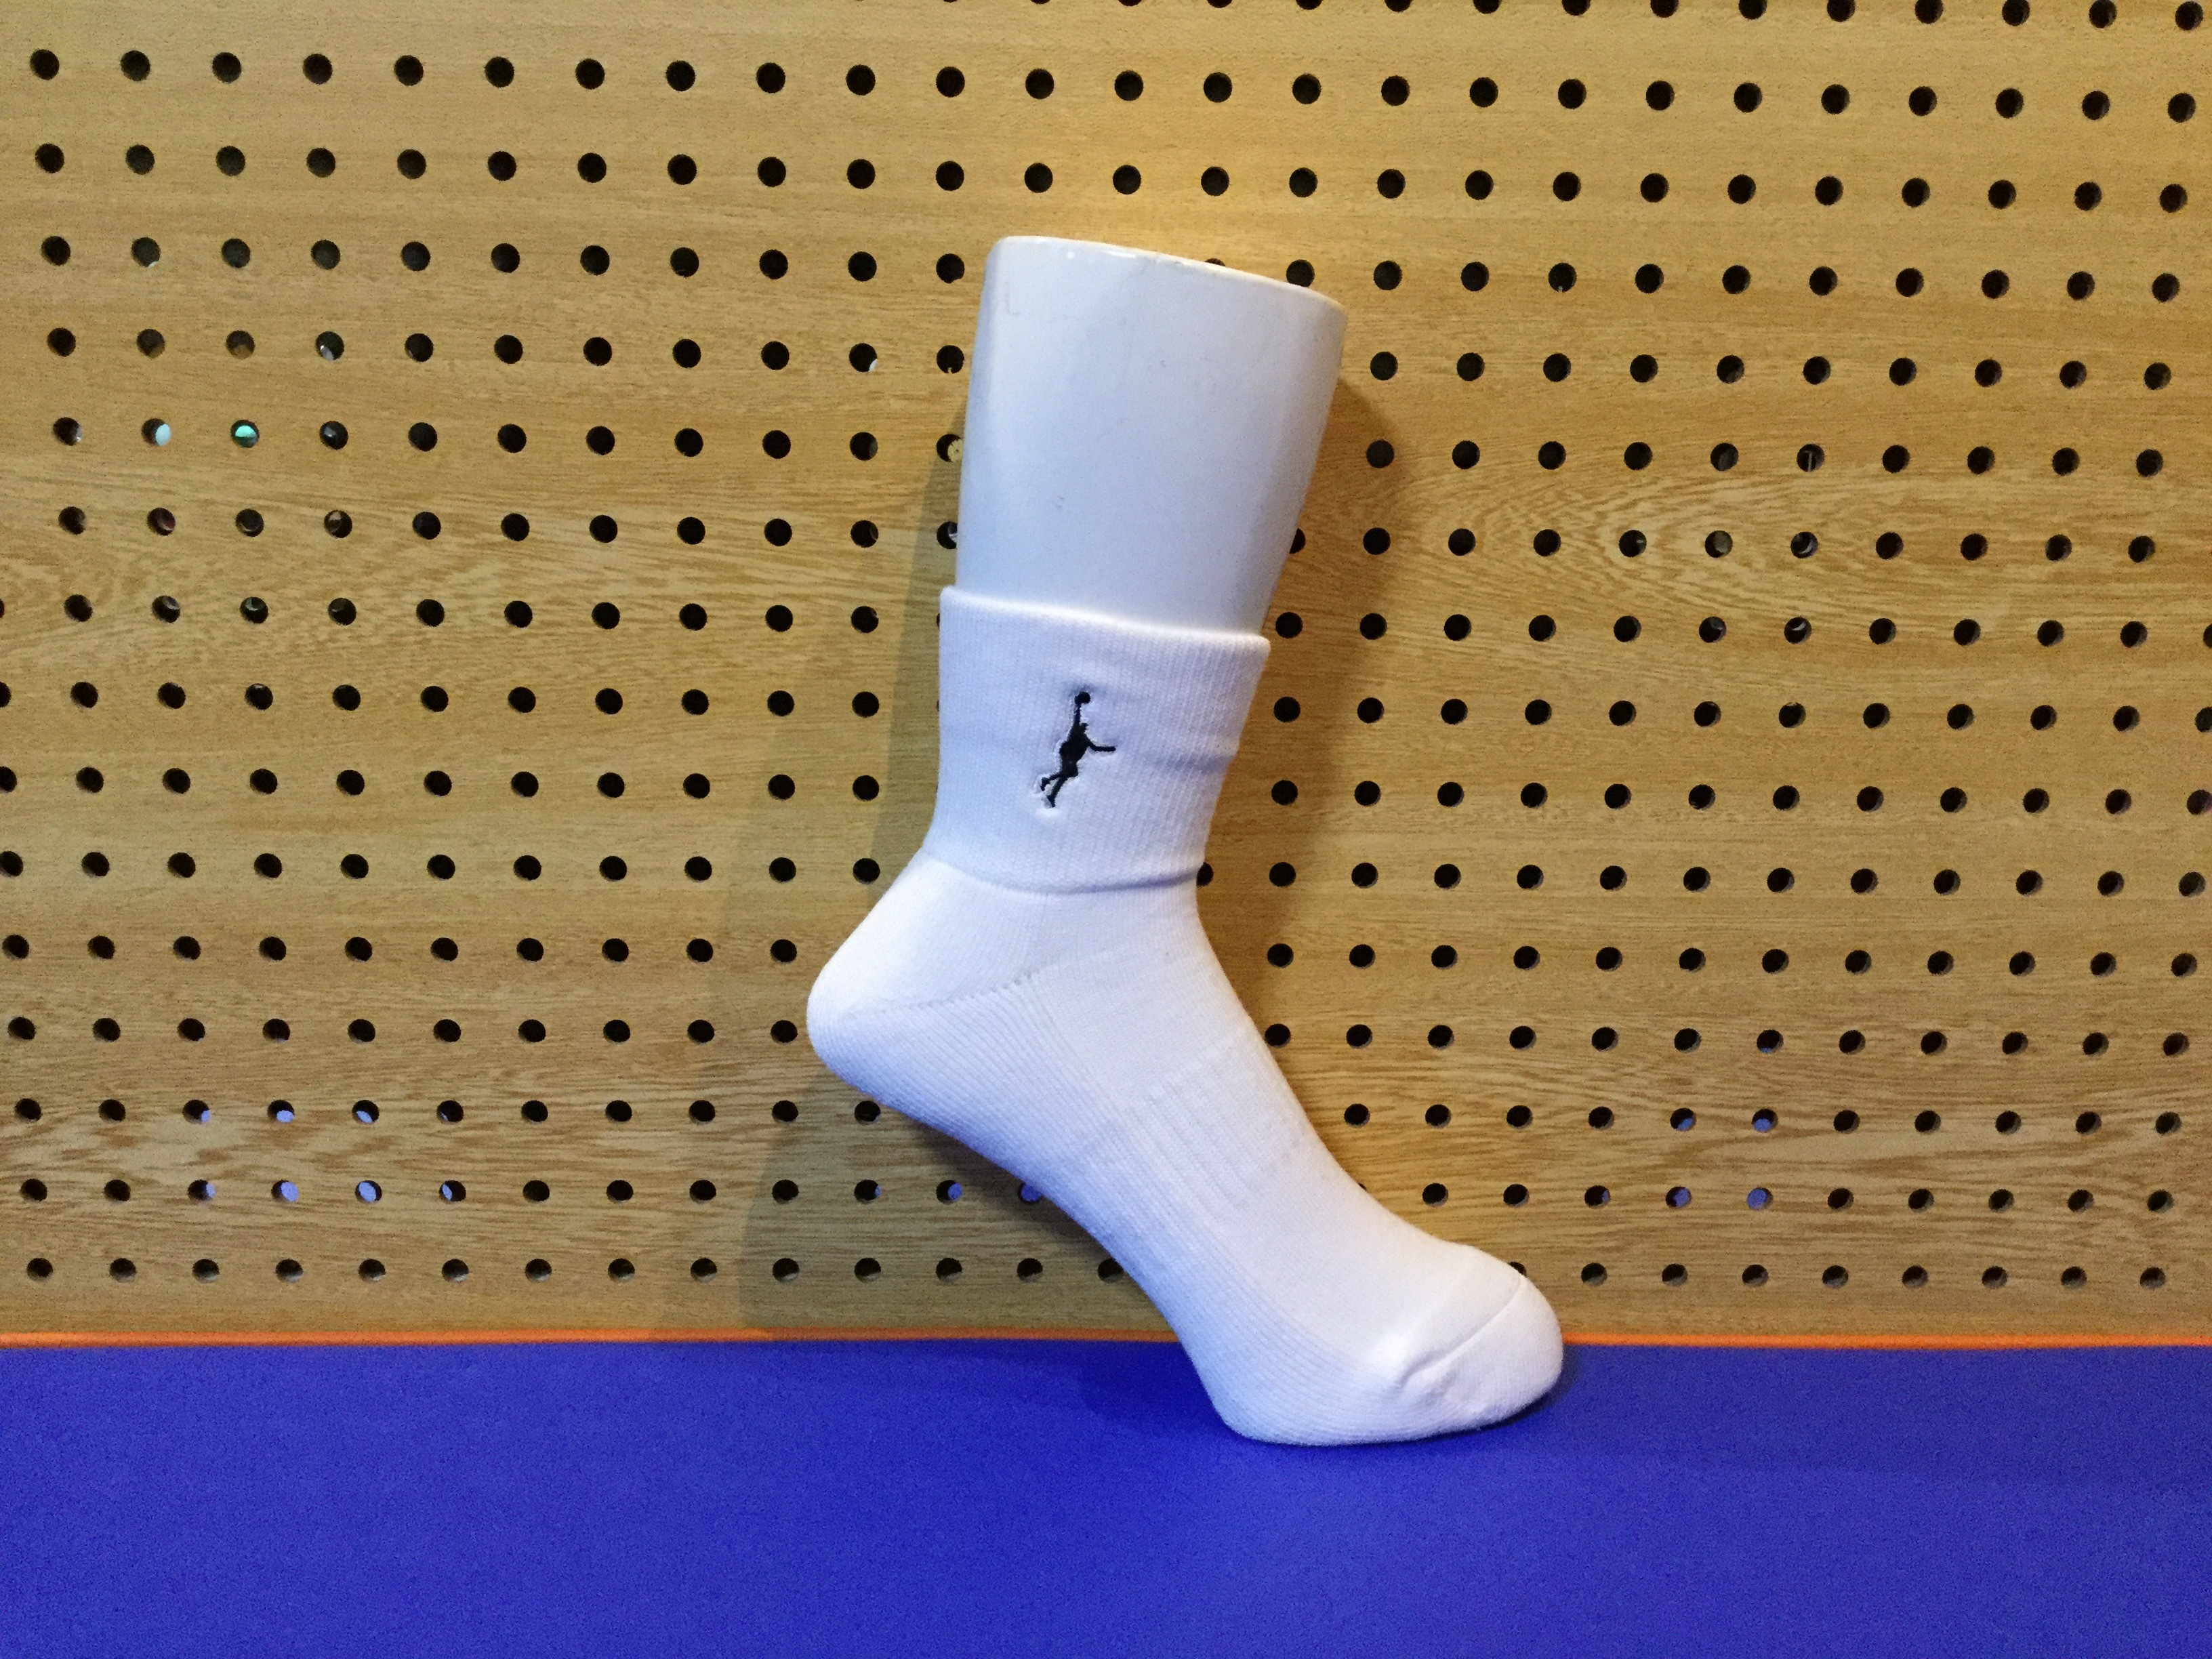 ITP SOCKS  ITP121A  【IN THE PAINT】インザペイント